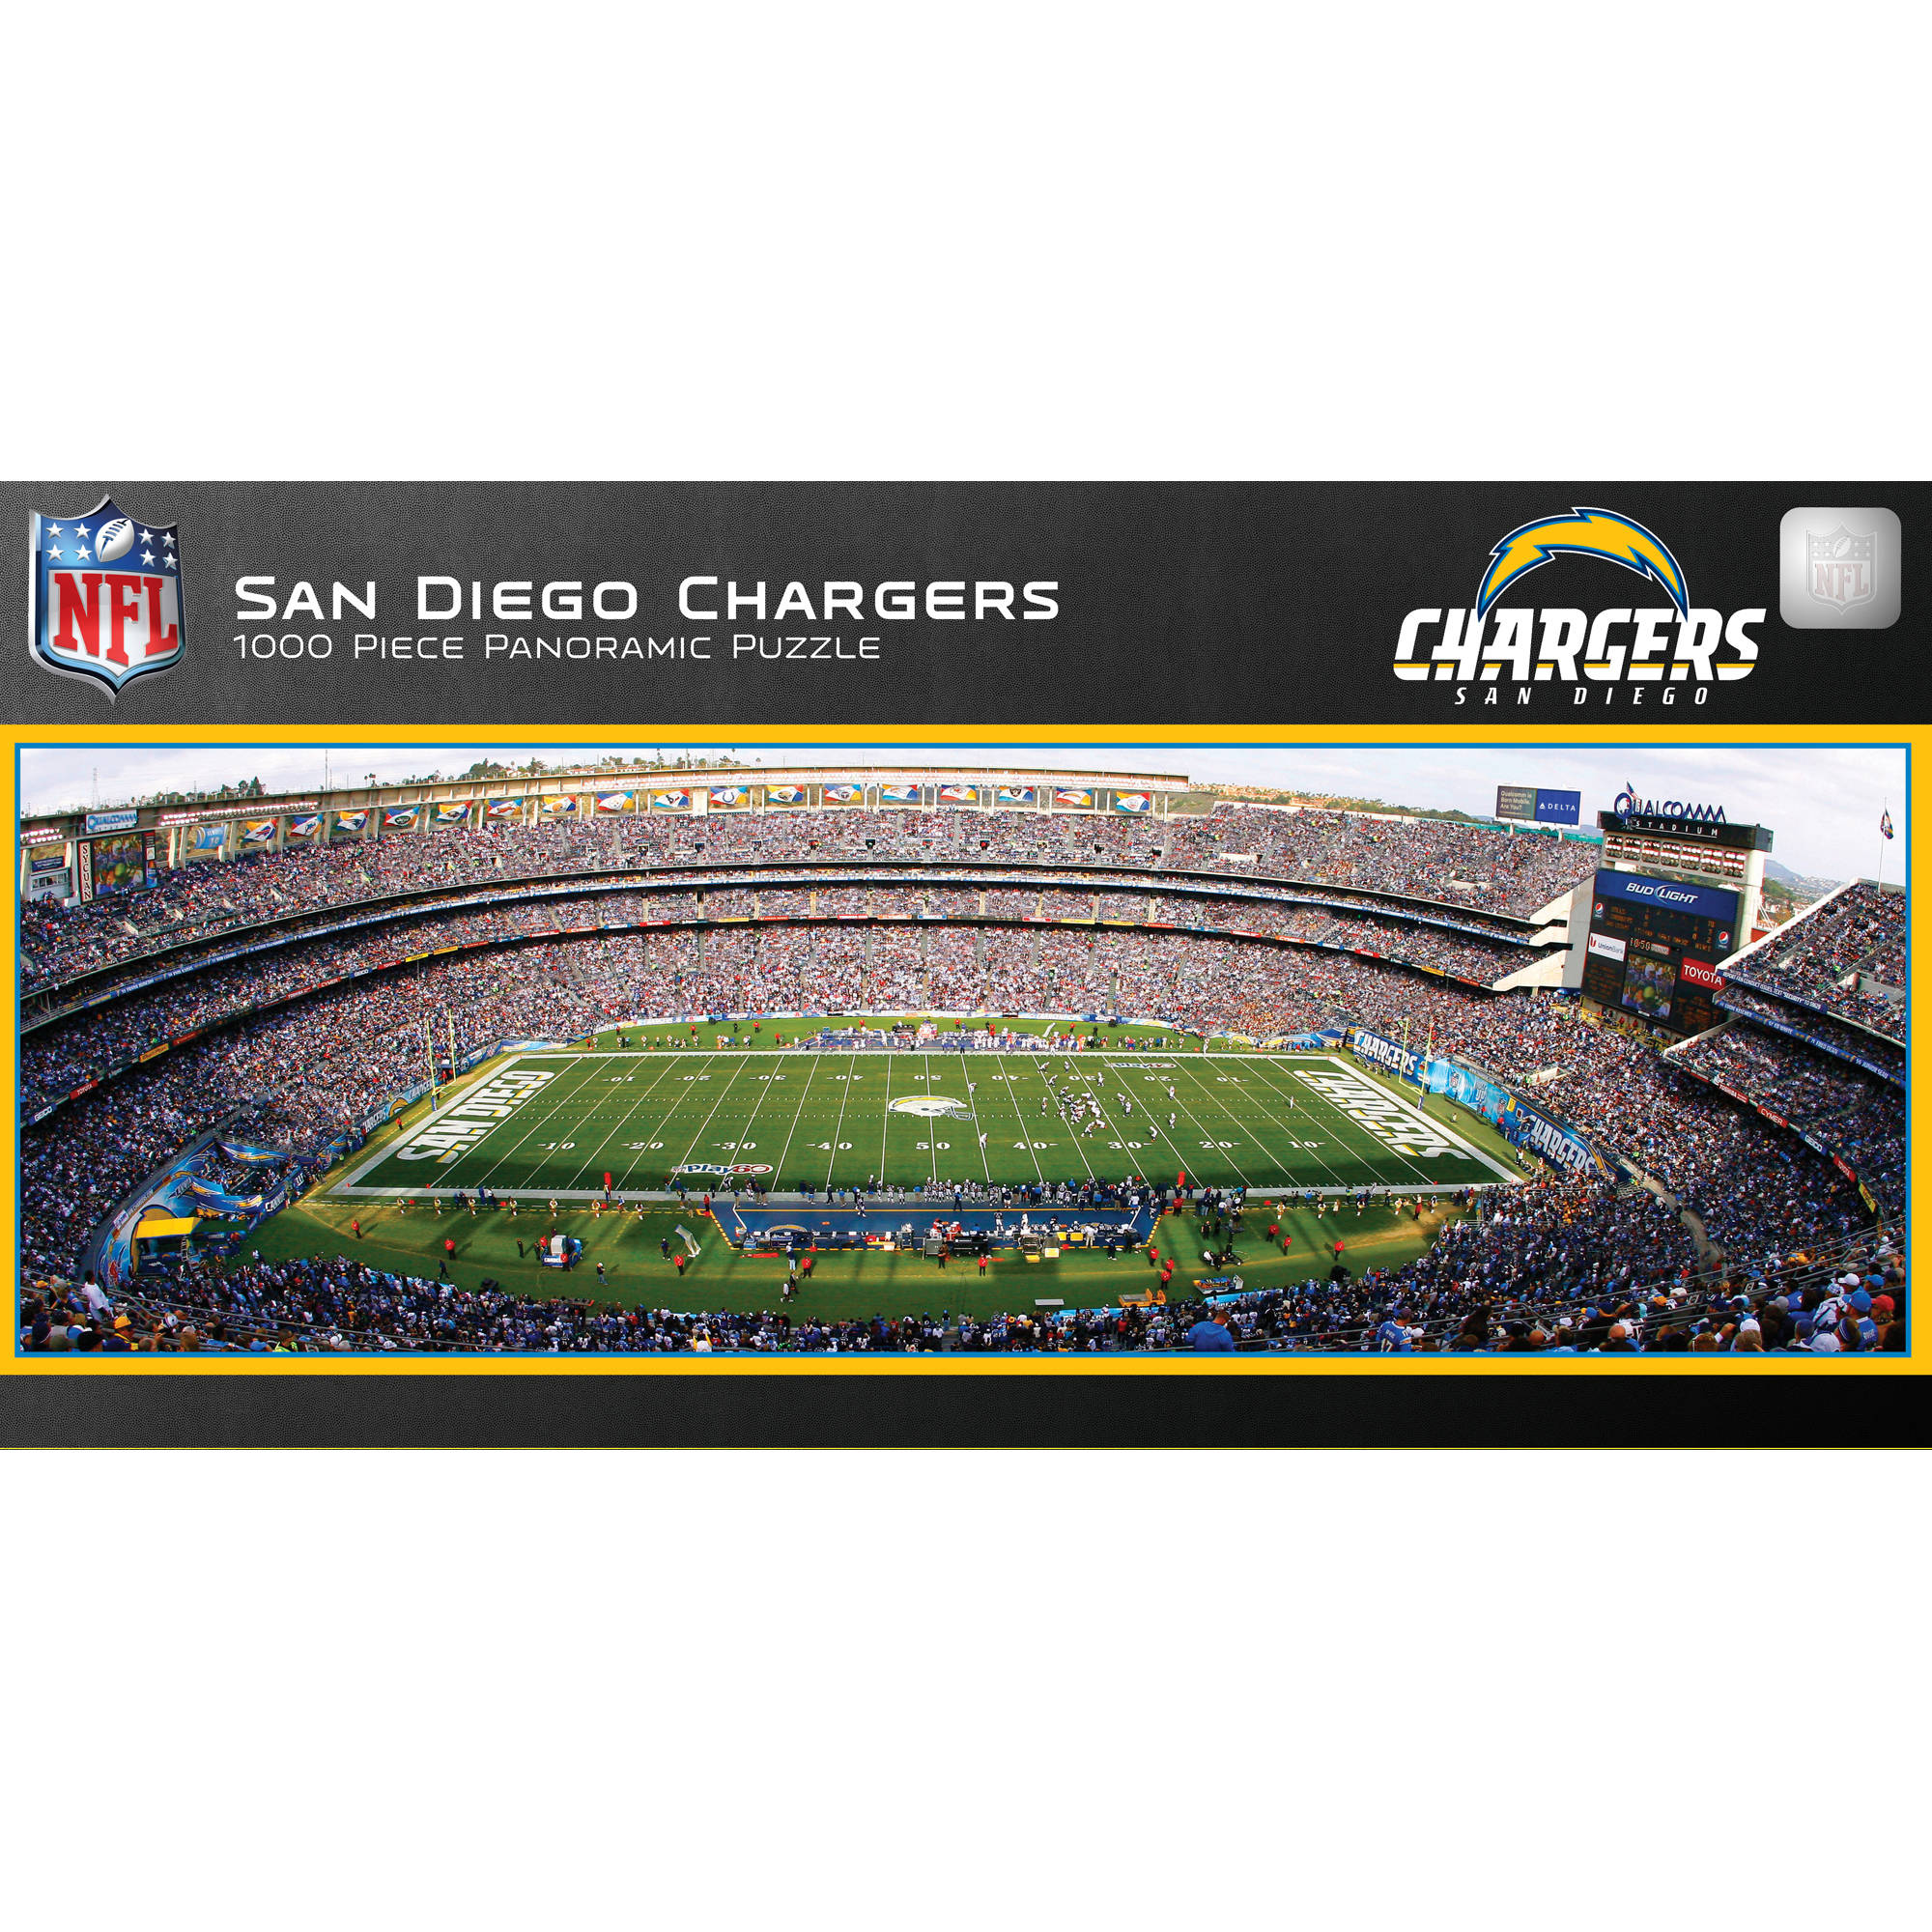 Master Pieces San Diego Chargers Panoramic Stadium Puzzle, 1,000 Pieces